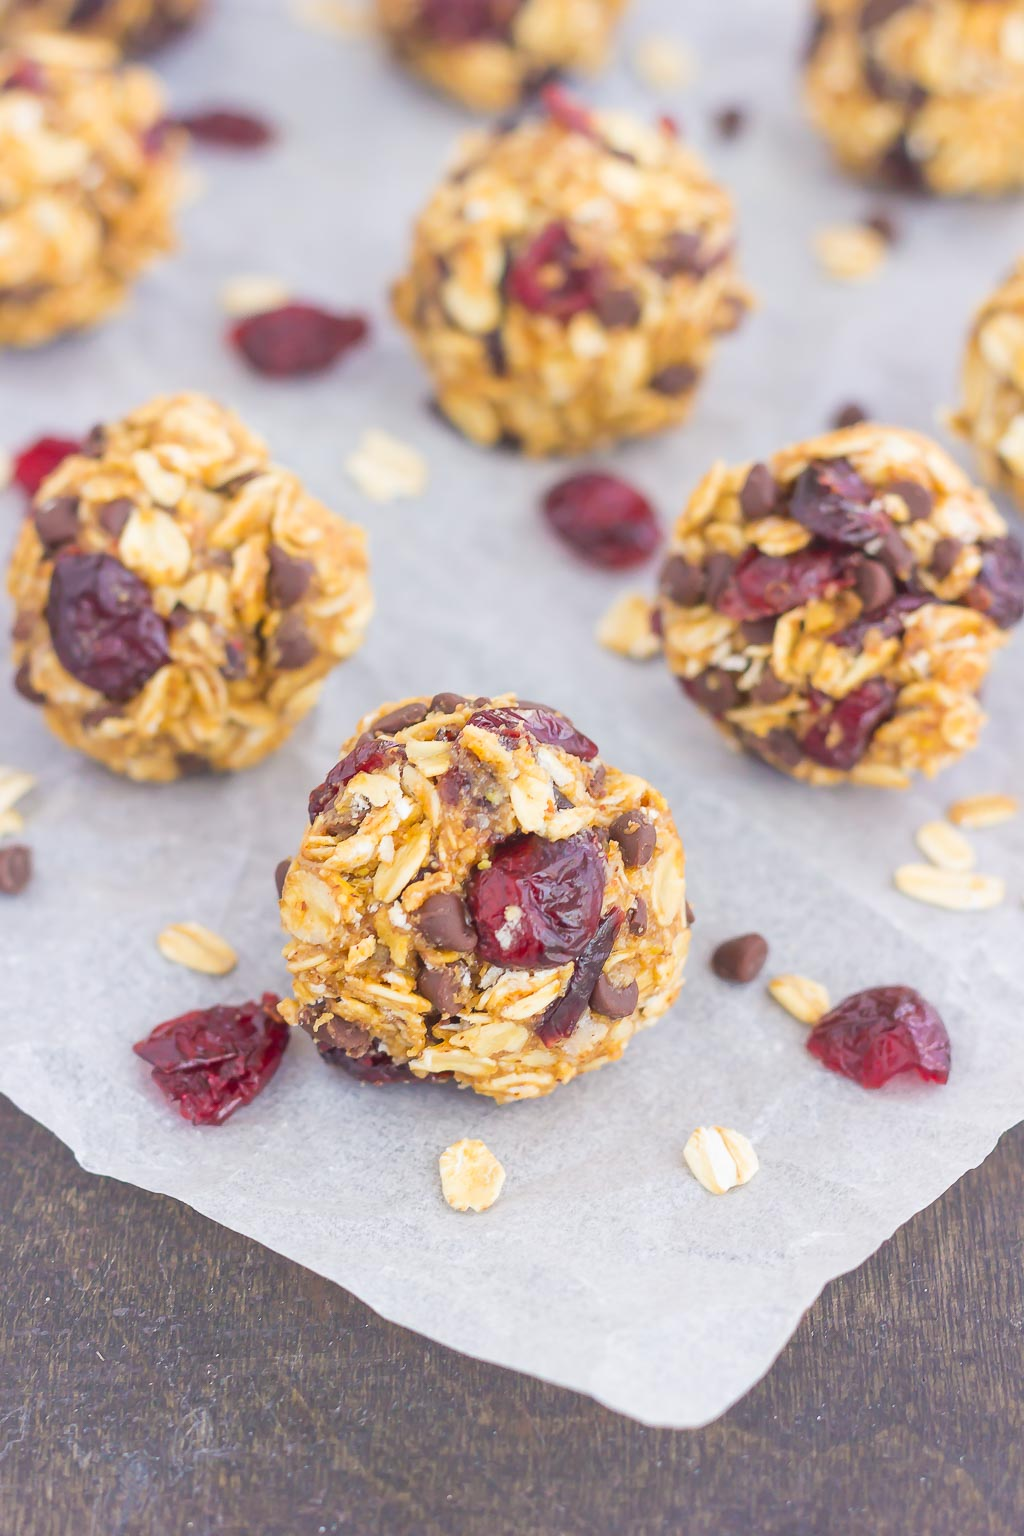 These Cherry Chocolate Chip Energy Bites are a simple, no-bake treat, filled with healthier ingredients and loaded with flavor. Perfect for a quick breakfast, snack, or even dessert, you'll be whipping up these bites all year long!